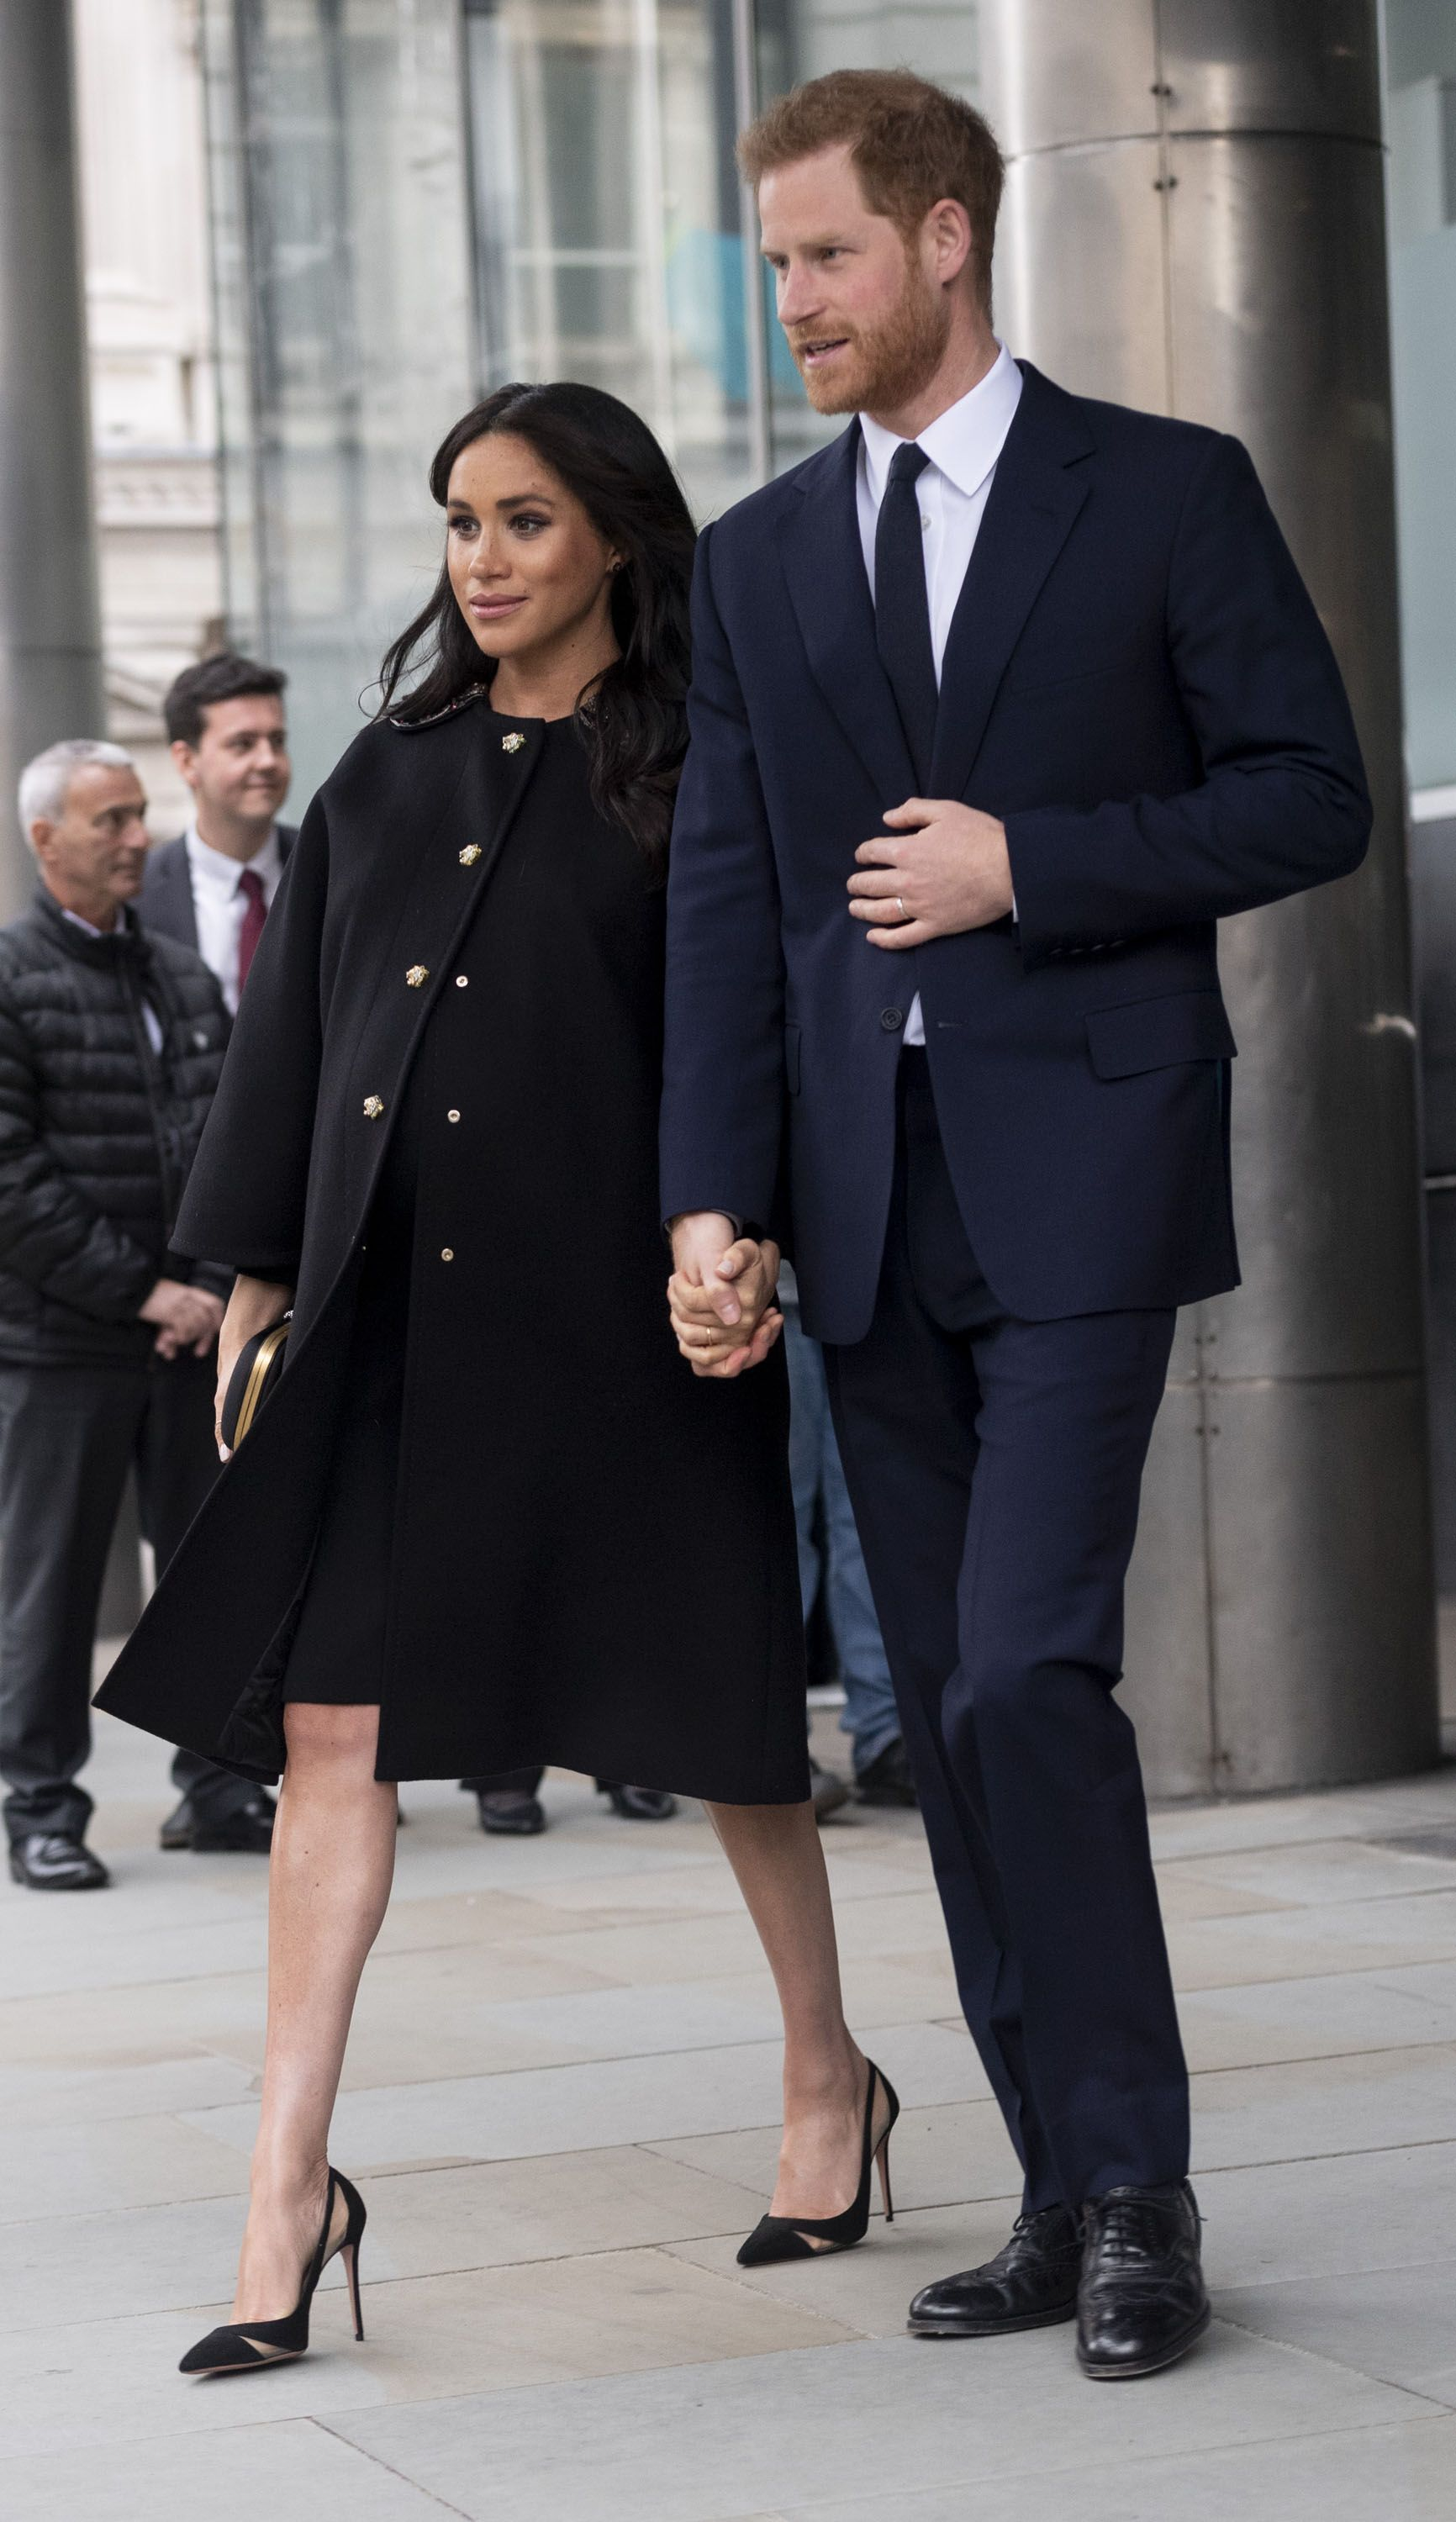 Is Meghan Markle controlling the SussexRoyal Instagram account?